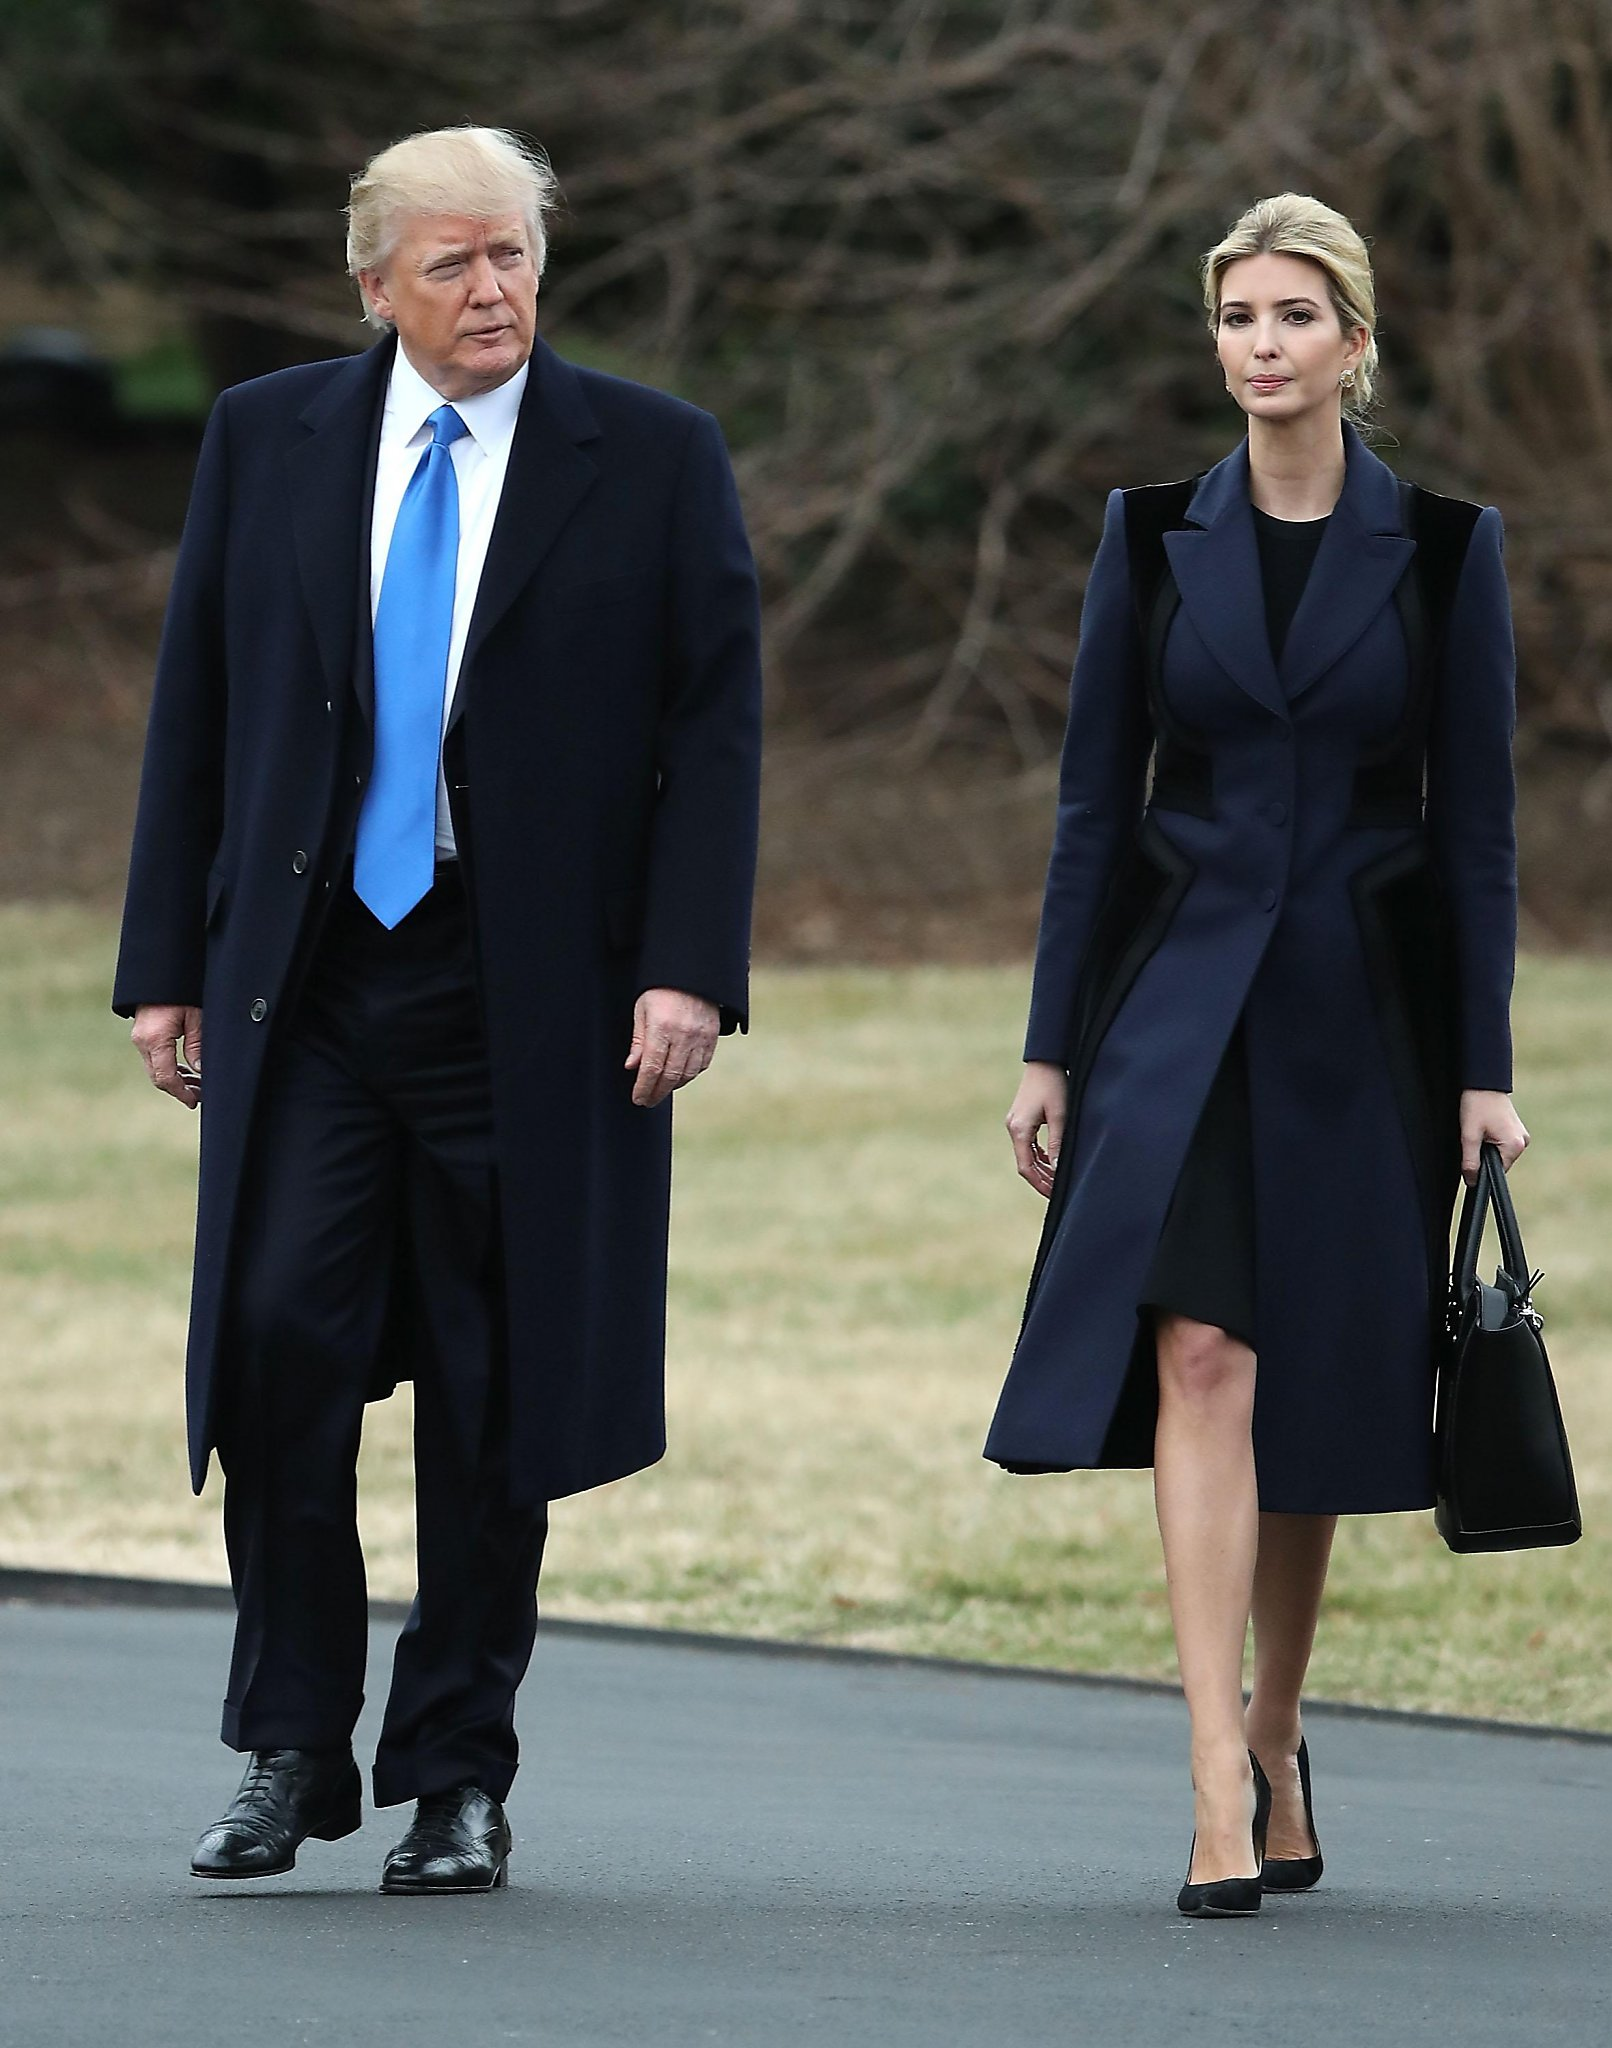 Is Trump using the Oval Office to try to enrich his family? - San Francisco  Chronicle